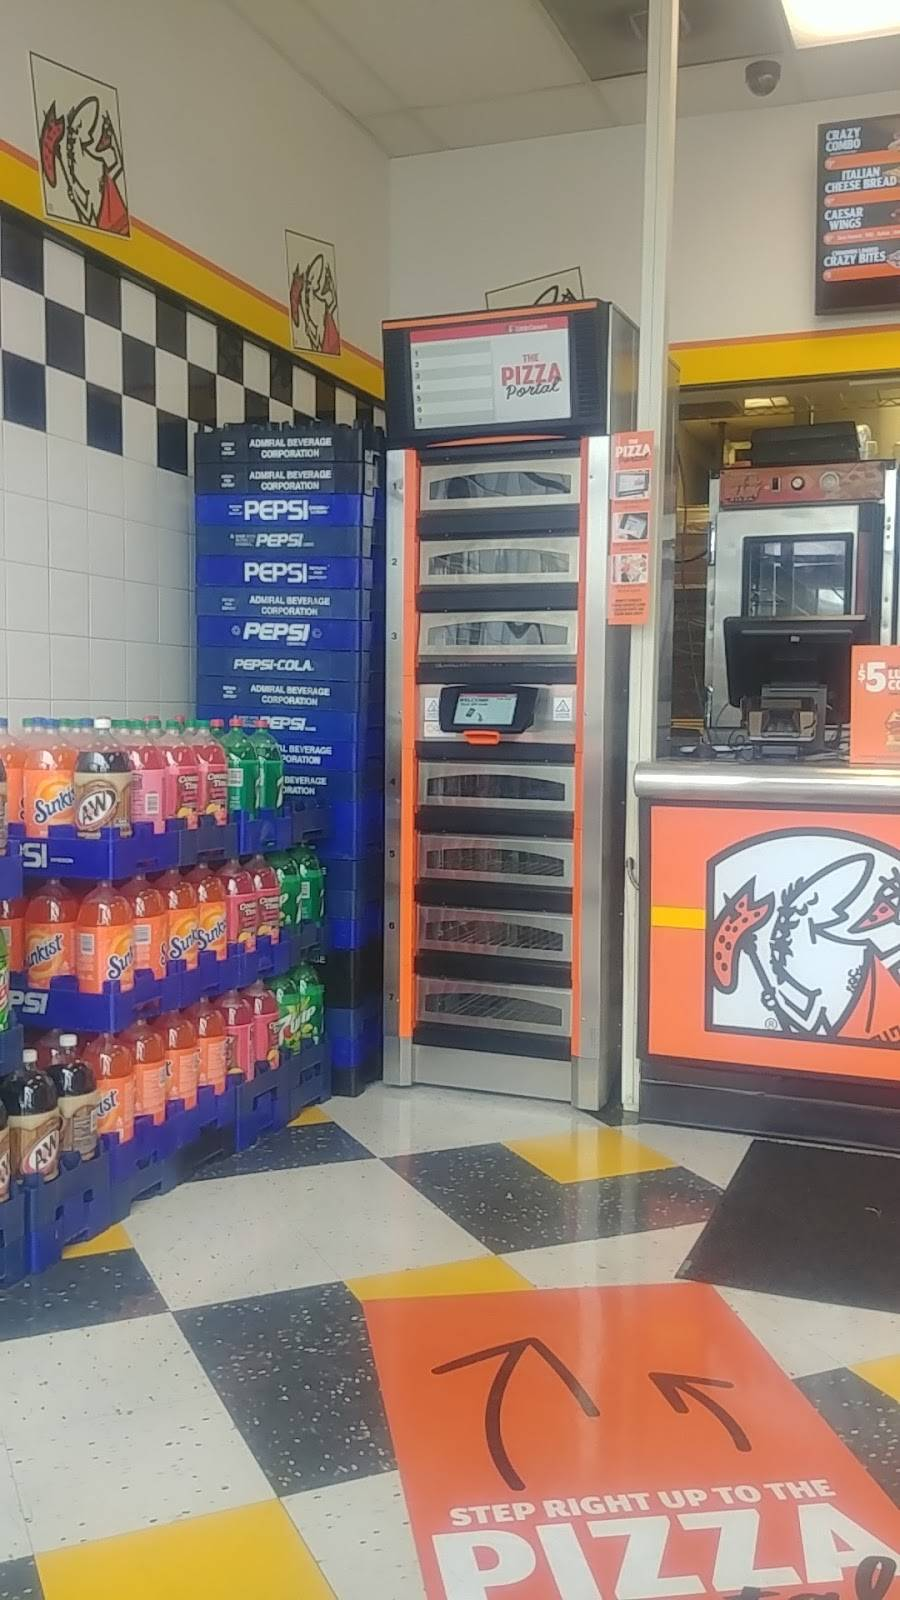 Little Caesars Pizza | meal delivery | 4862 S 1900 W, Roy, UT 84067, USA | 8017731300 OR +1 801-773-1300